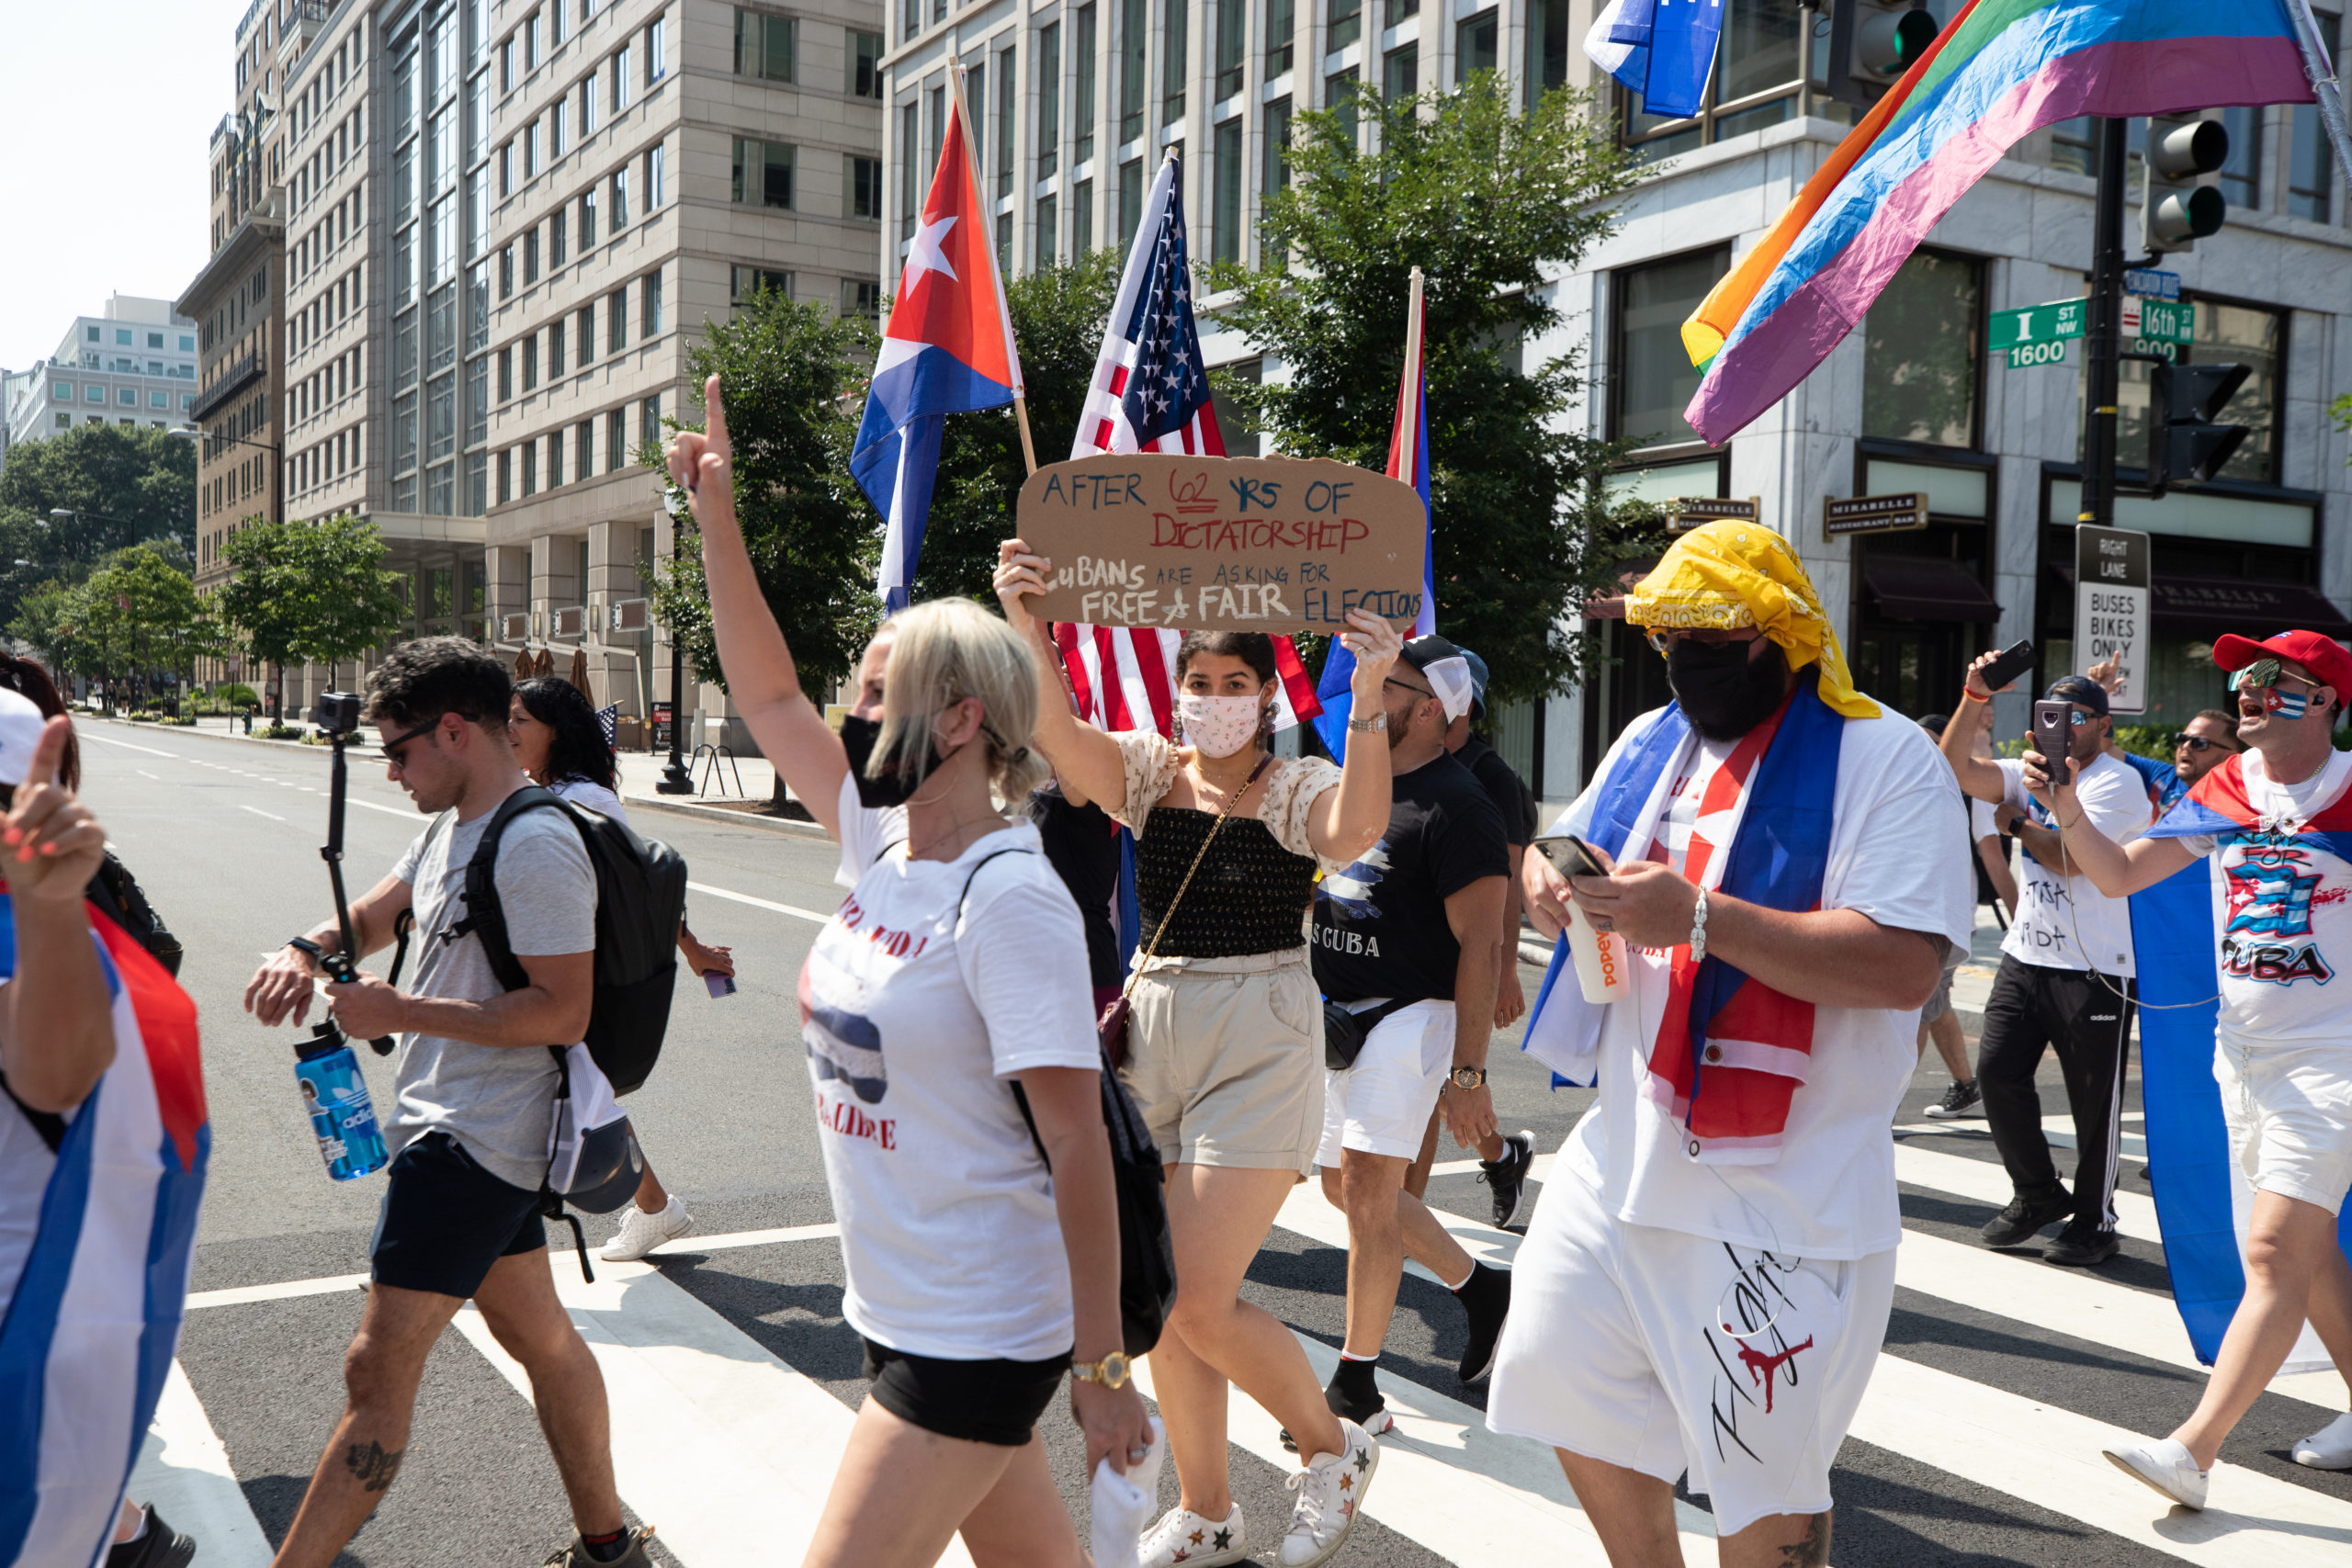 Demonstrators participated in a rally for Cuban freedom near the White House where attendees asked President Joe Biden to intervene and end communist rule over the country, in Washington, D.C. on July 26, 2021. (Kaylee Greenlee - Daily Caller News Foundation)